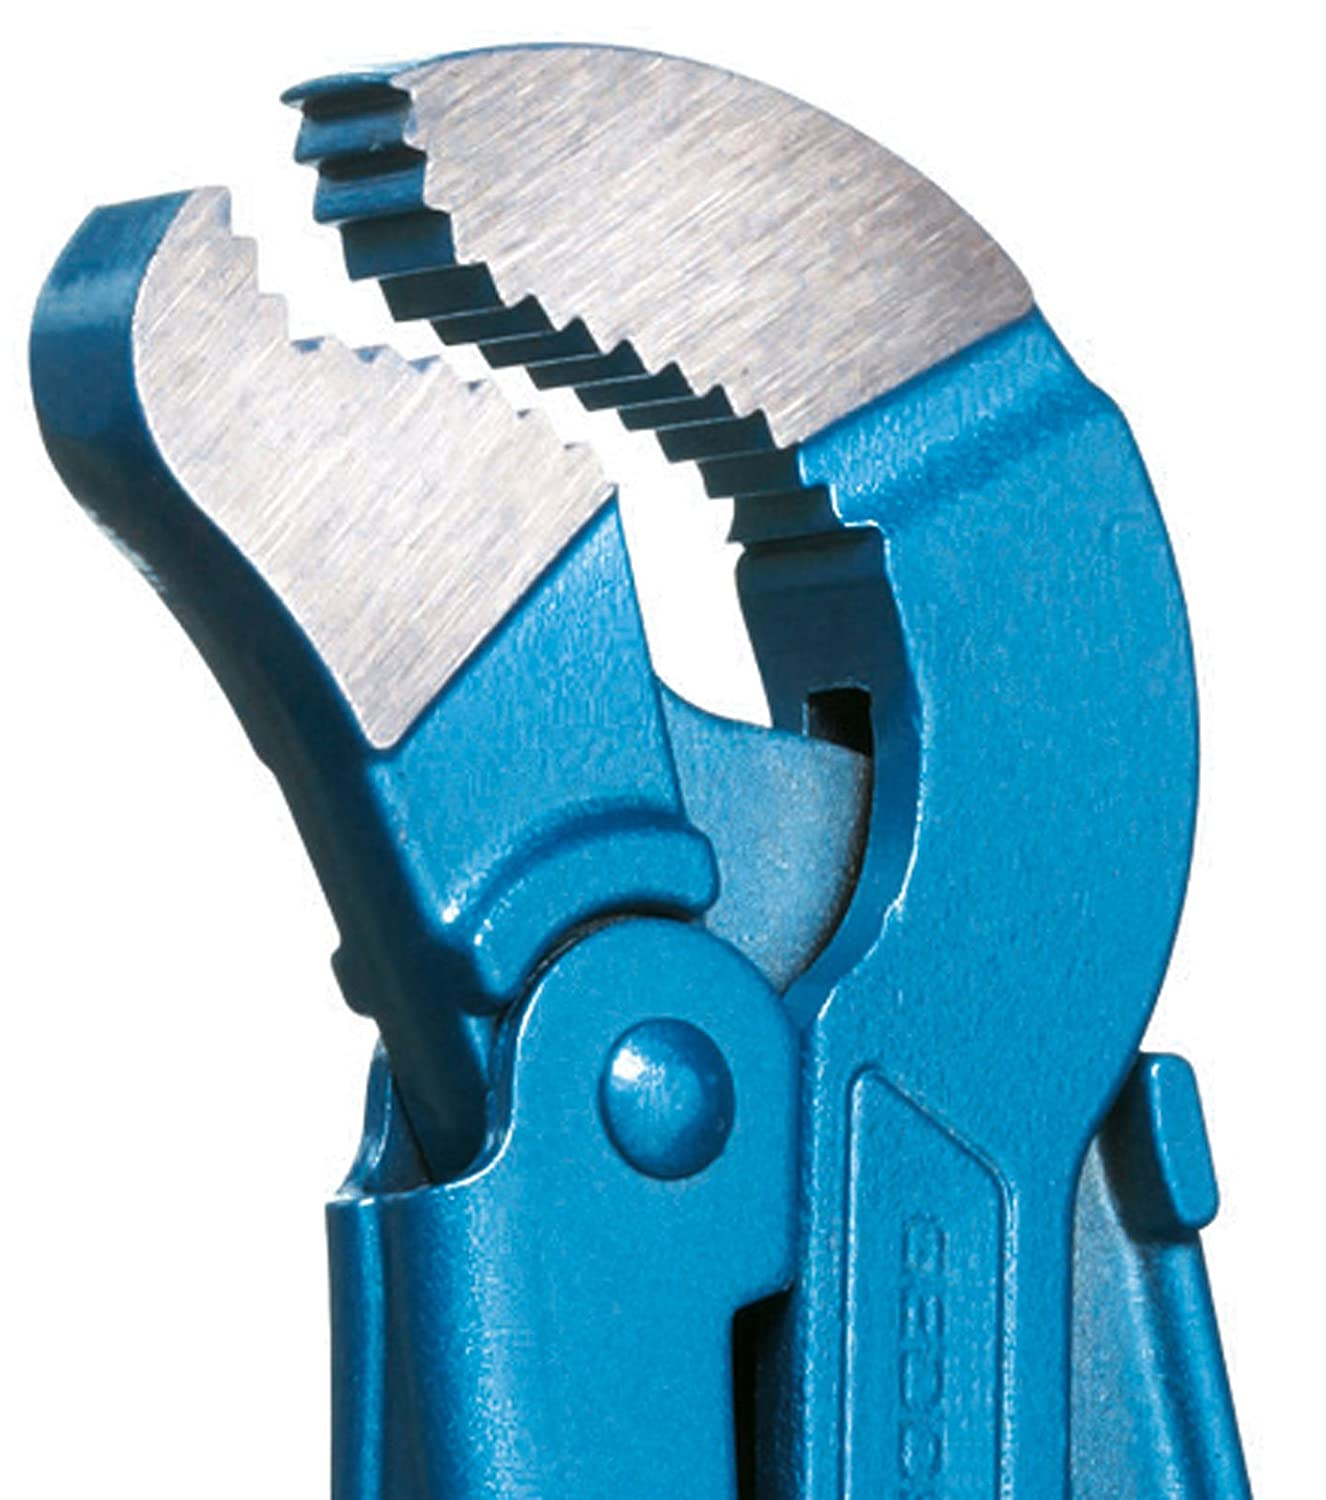 GEDORE 100 1.1//2 Pipe Wrench ECK-SCHWEDE-snap 1.1//2